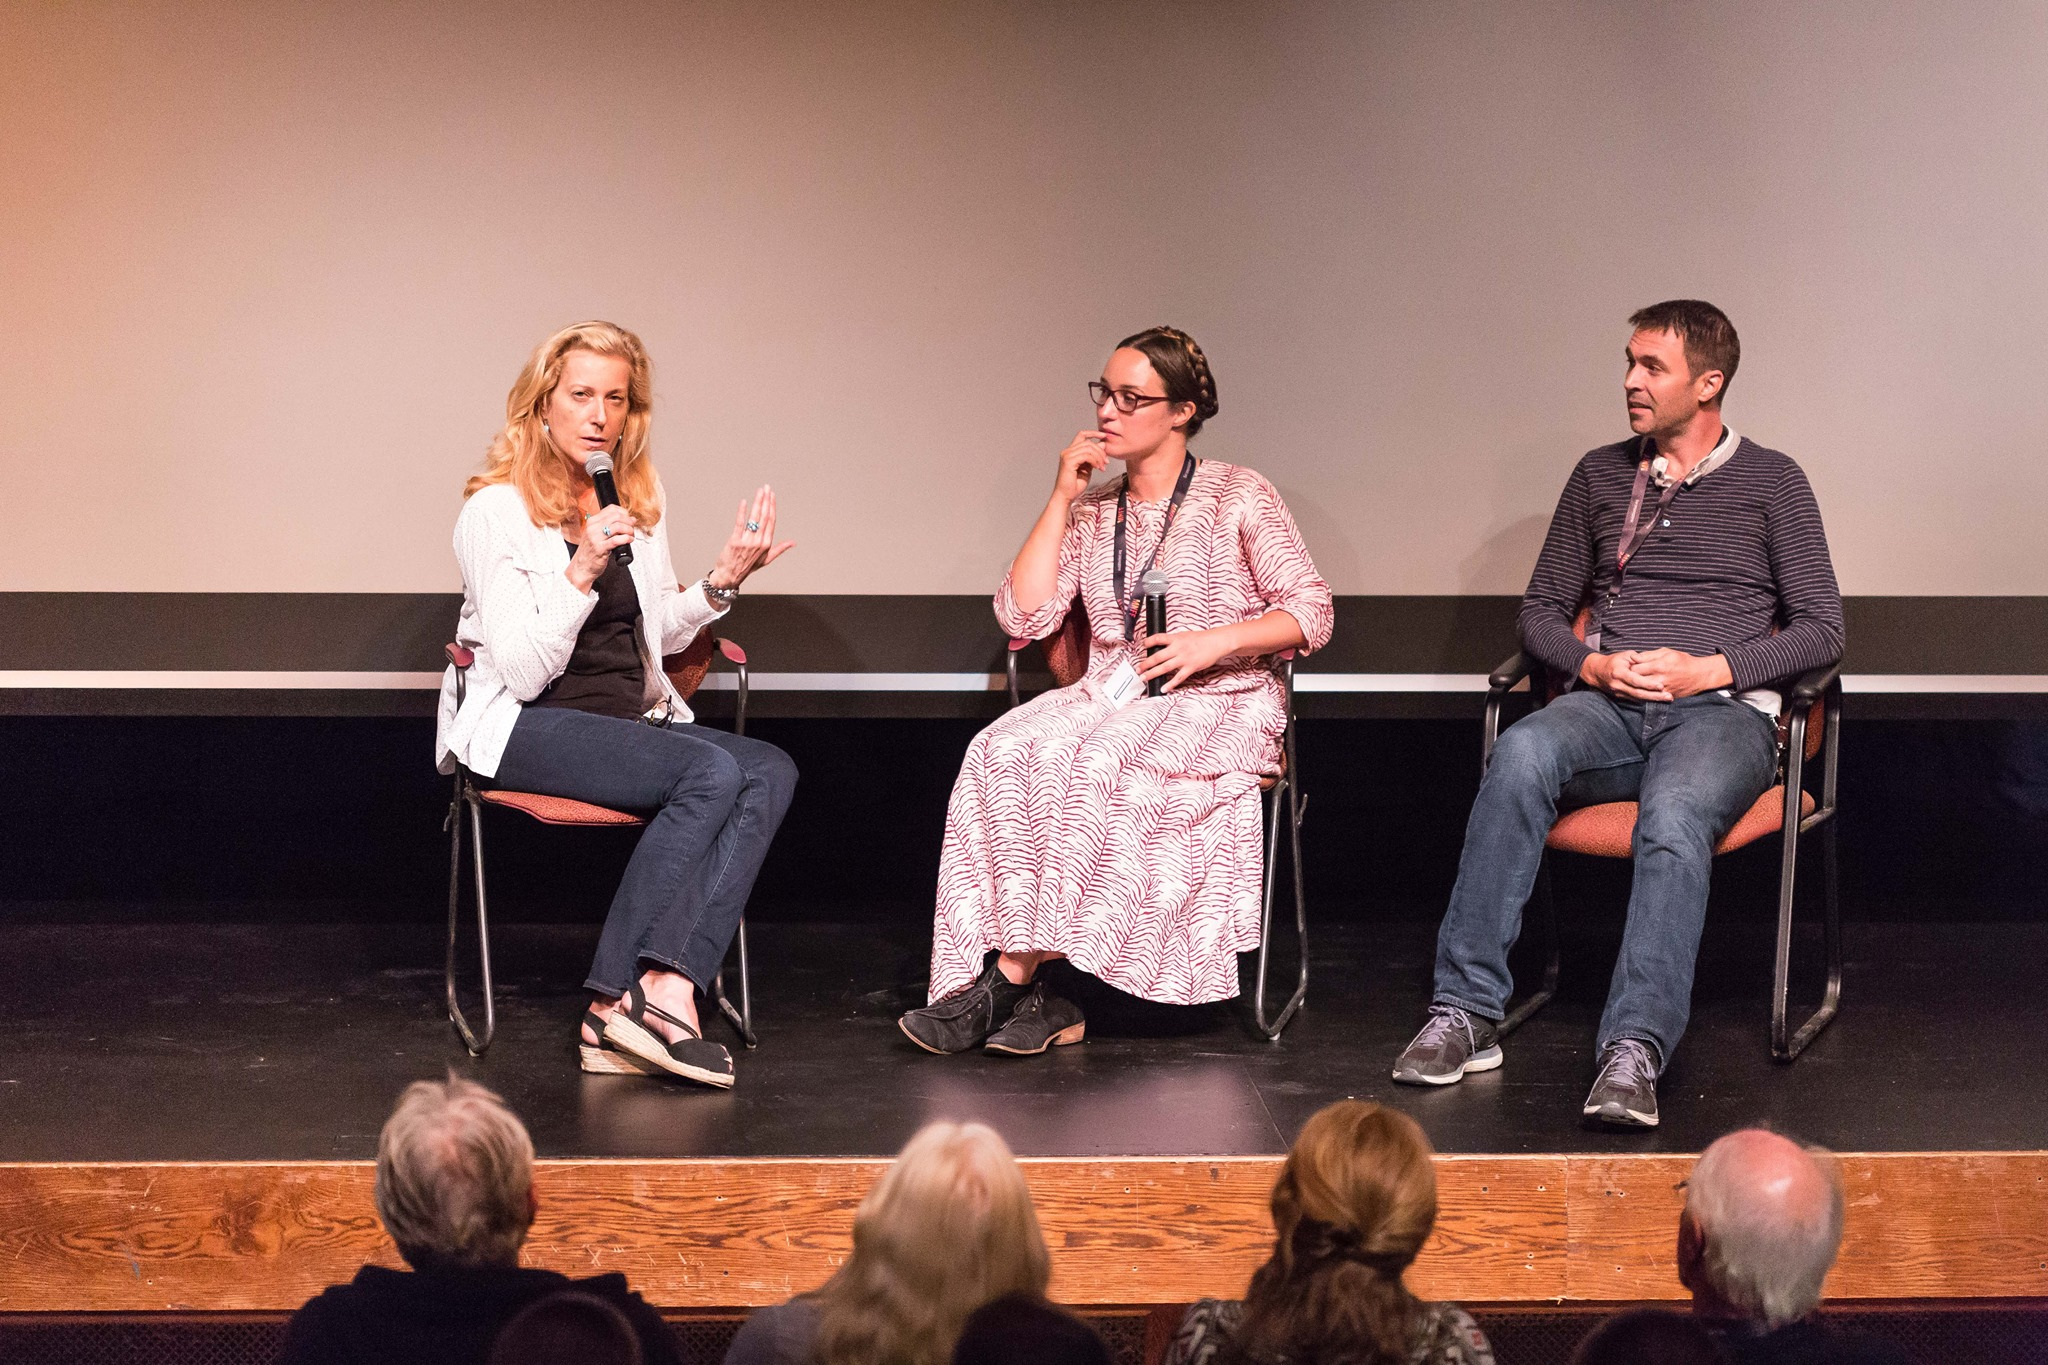 """Q&A Moderator Kate Hearst speaks with the filmmakers behind """"Approaching the Elephant"""" after its screening on Opening Night at the 2015 Festival. PC: Oliver Parini"""